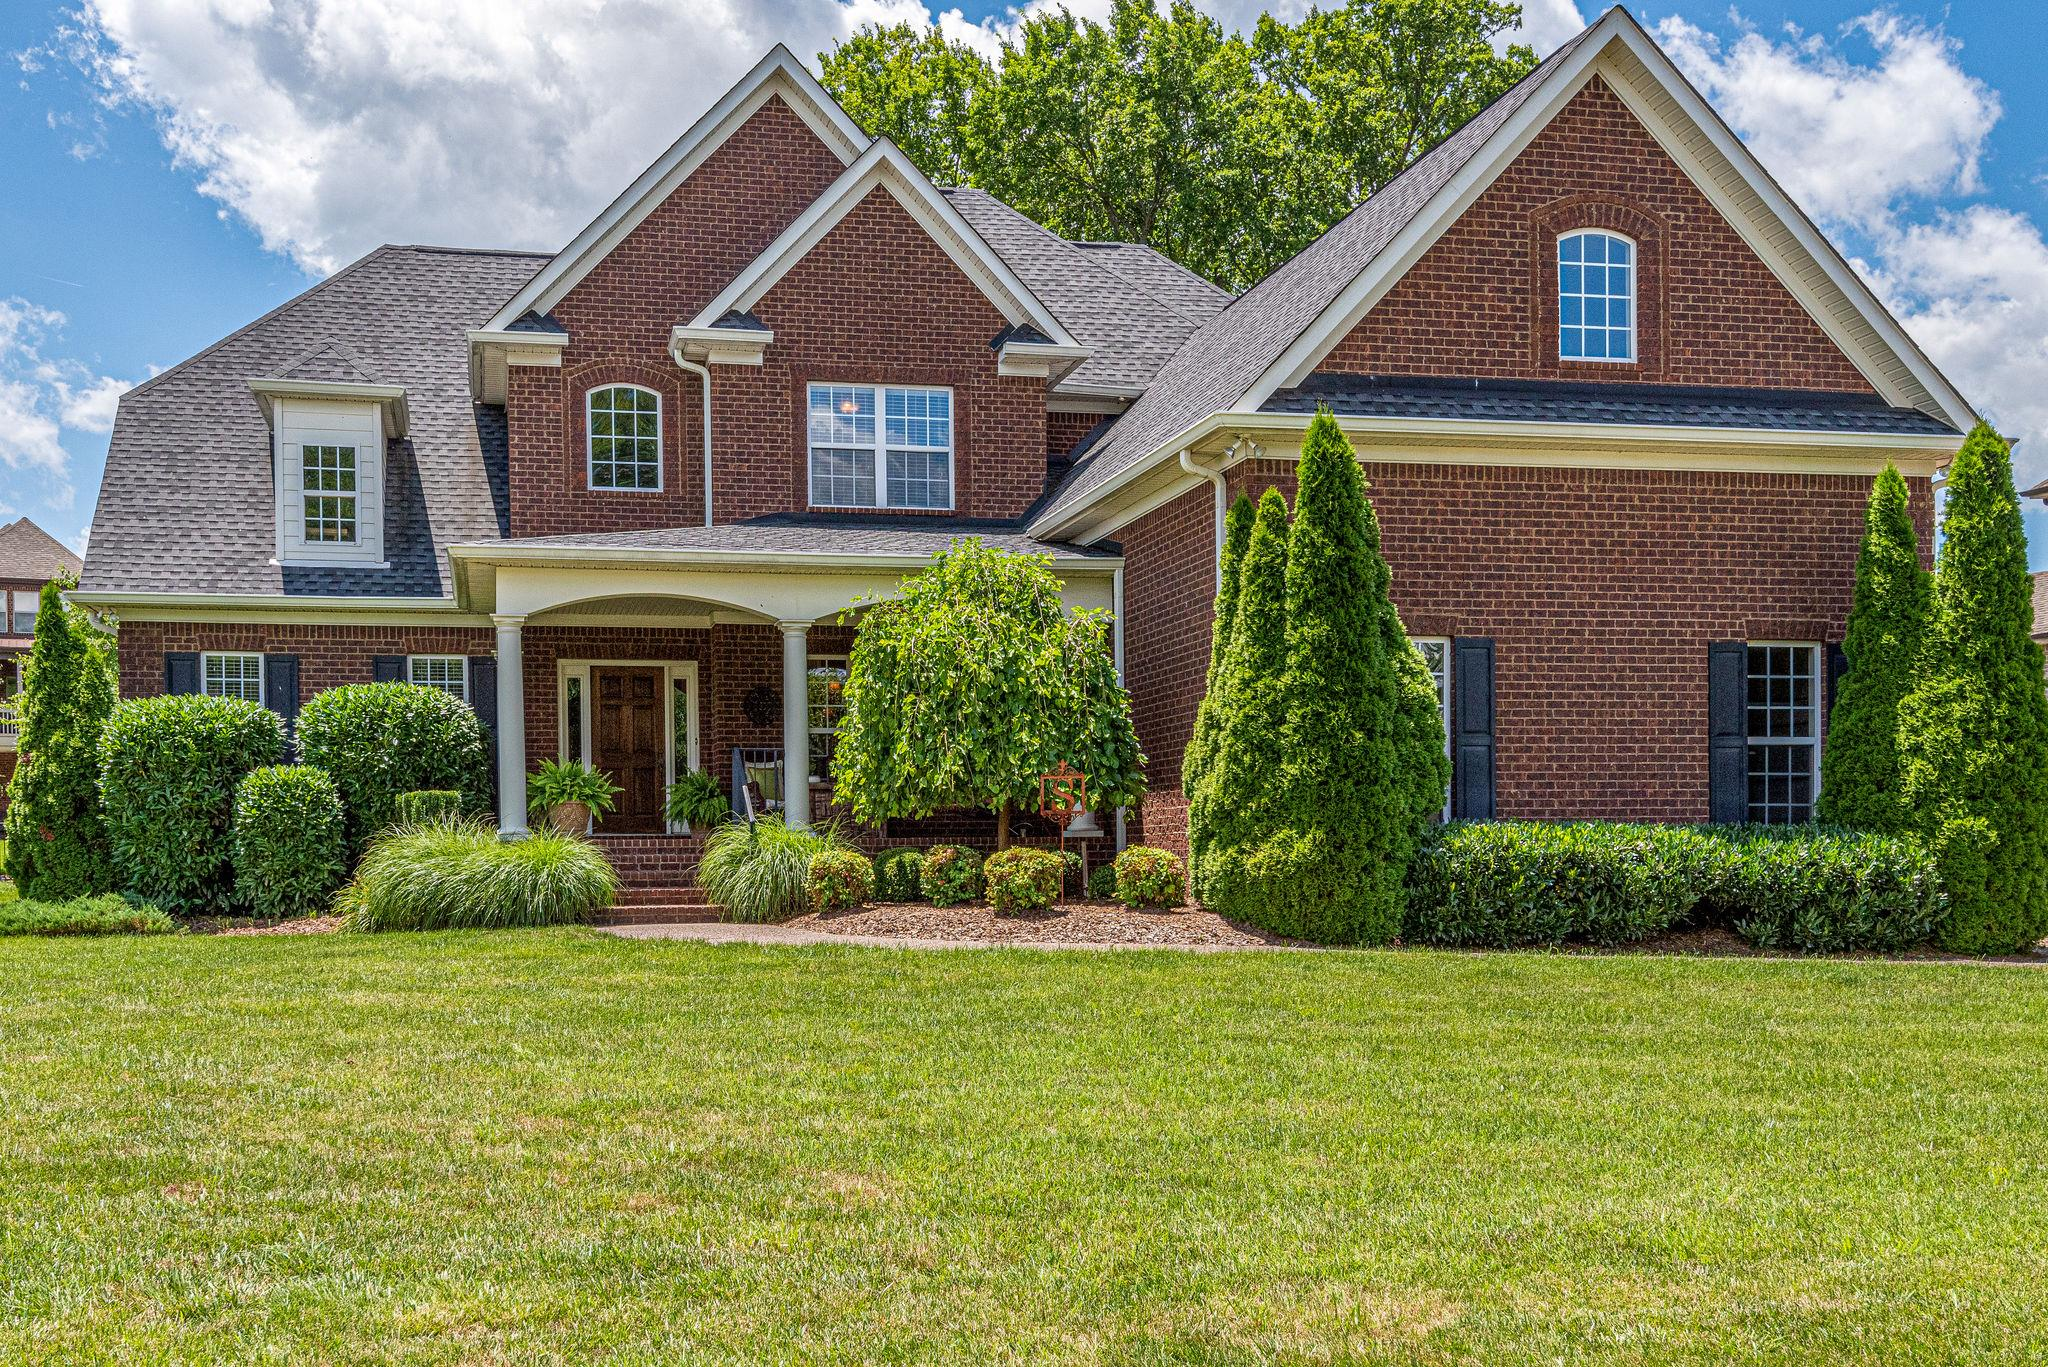 4023 Miles Johnson Pkwy, Spring Hill, TN 37174 - Spring Hill, TN real estate listing